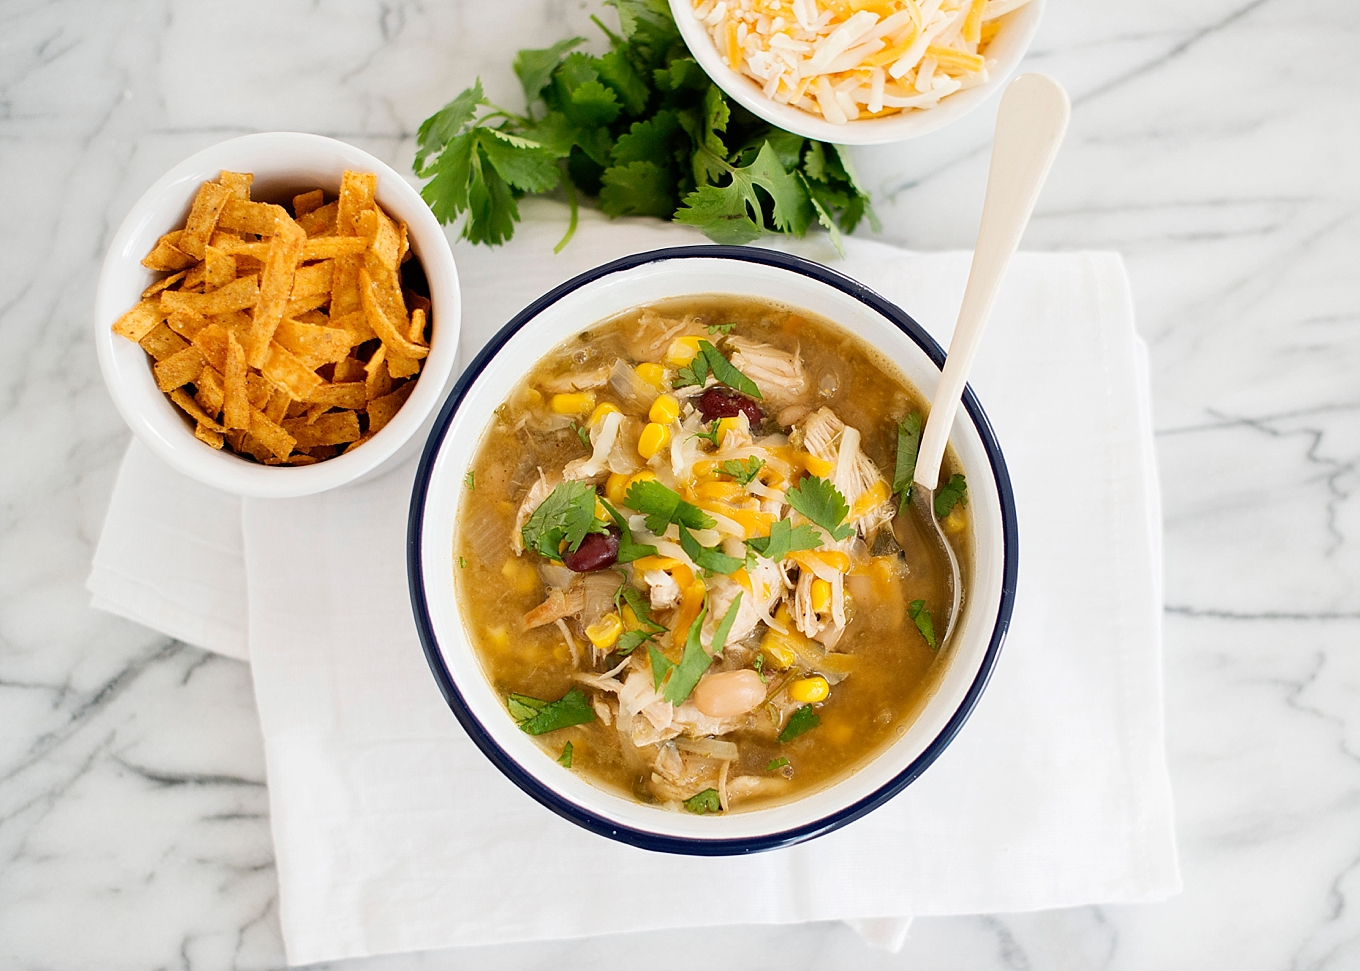 This Green Chicken Chili a go-to soup recipe. Throw everything in your Instant Pot and you have a delicious, healthy dinner on the table in 30 minutes.